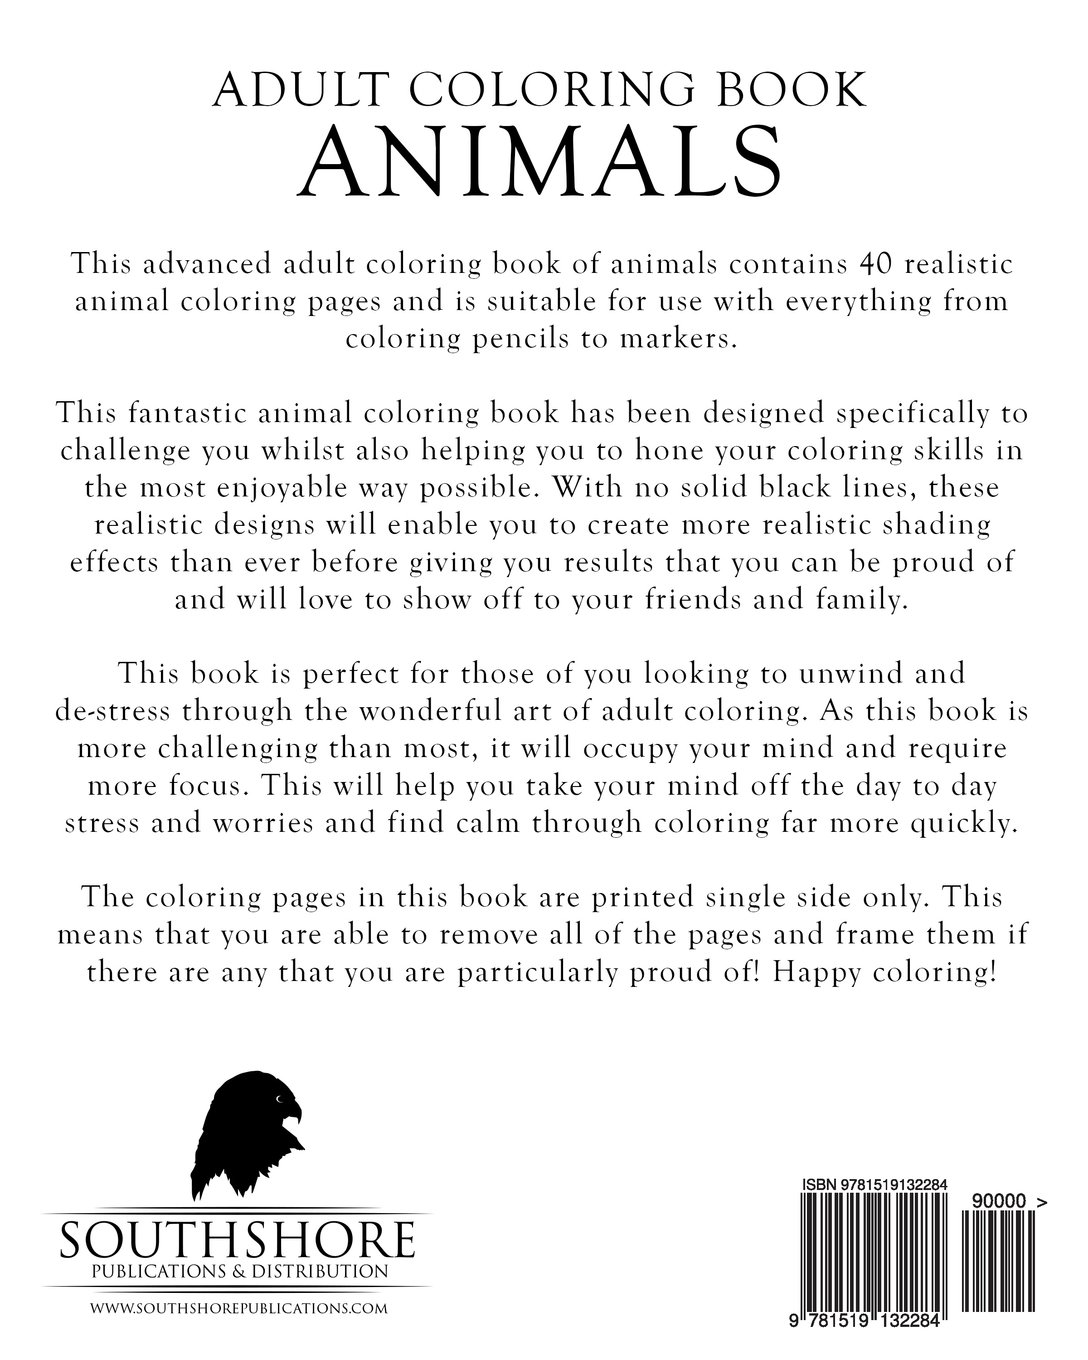 Amazon.com: Adult Coloring Book Animals: Advanced Realistic Animal ...